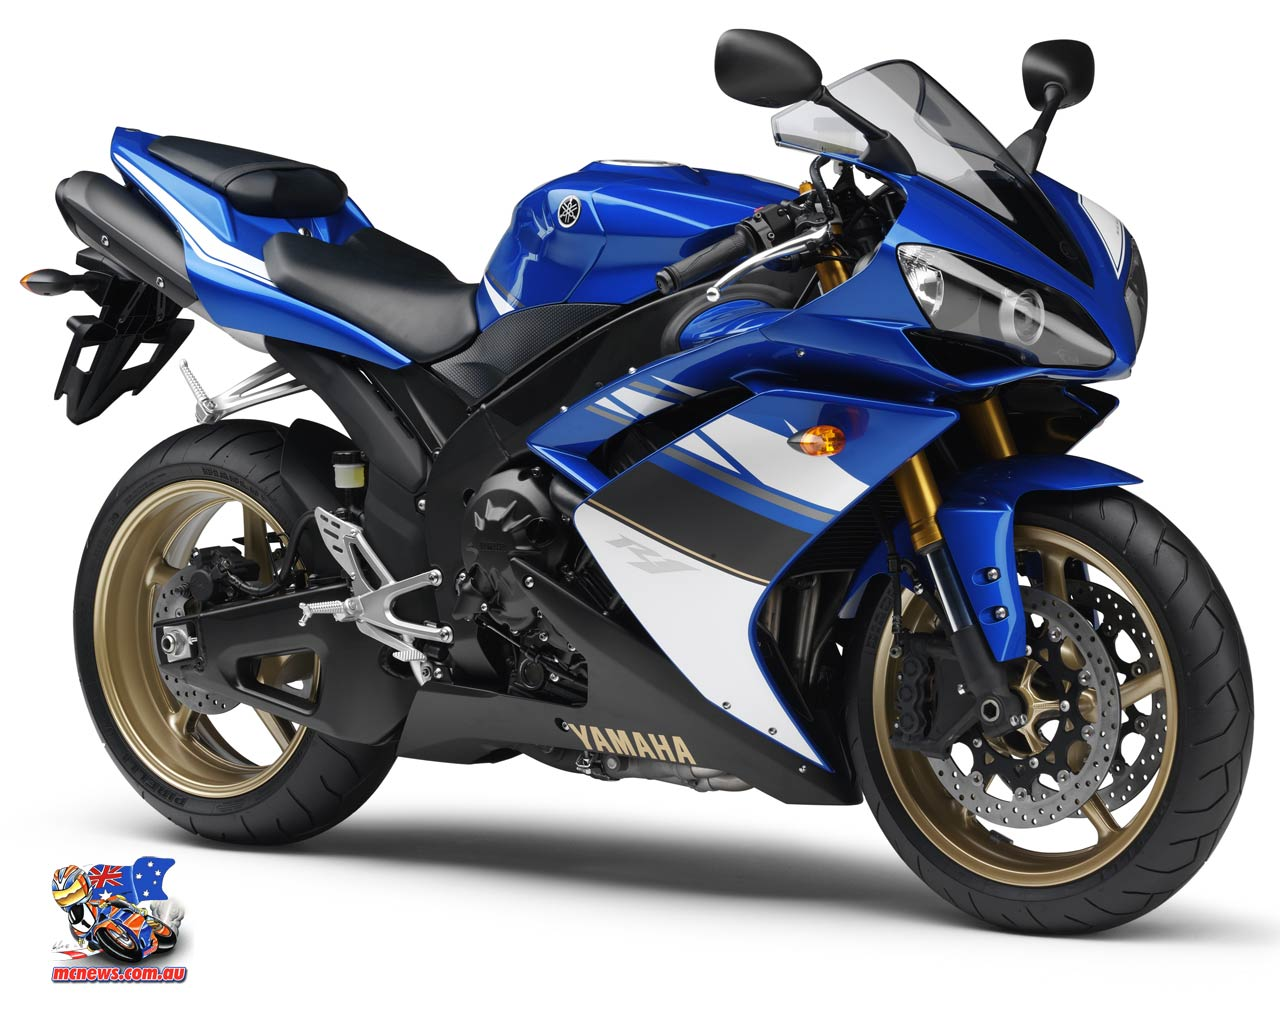 Yamaha R1 Wallpaper 13724 Hd Wallpapers in Bikes   Imagescicom 1280x1024